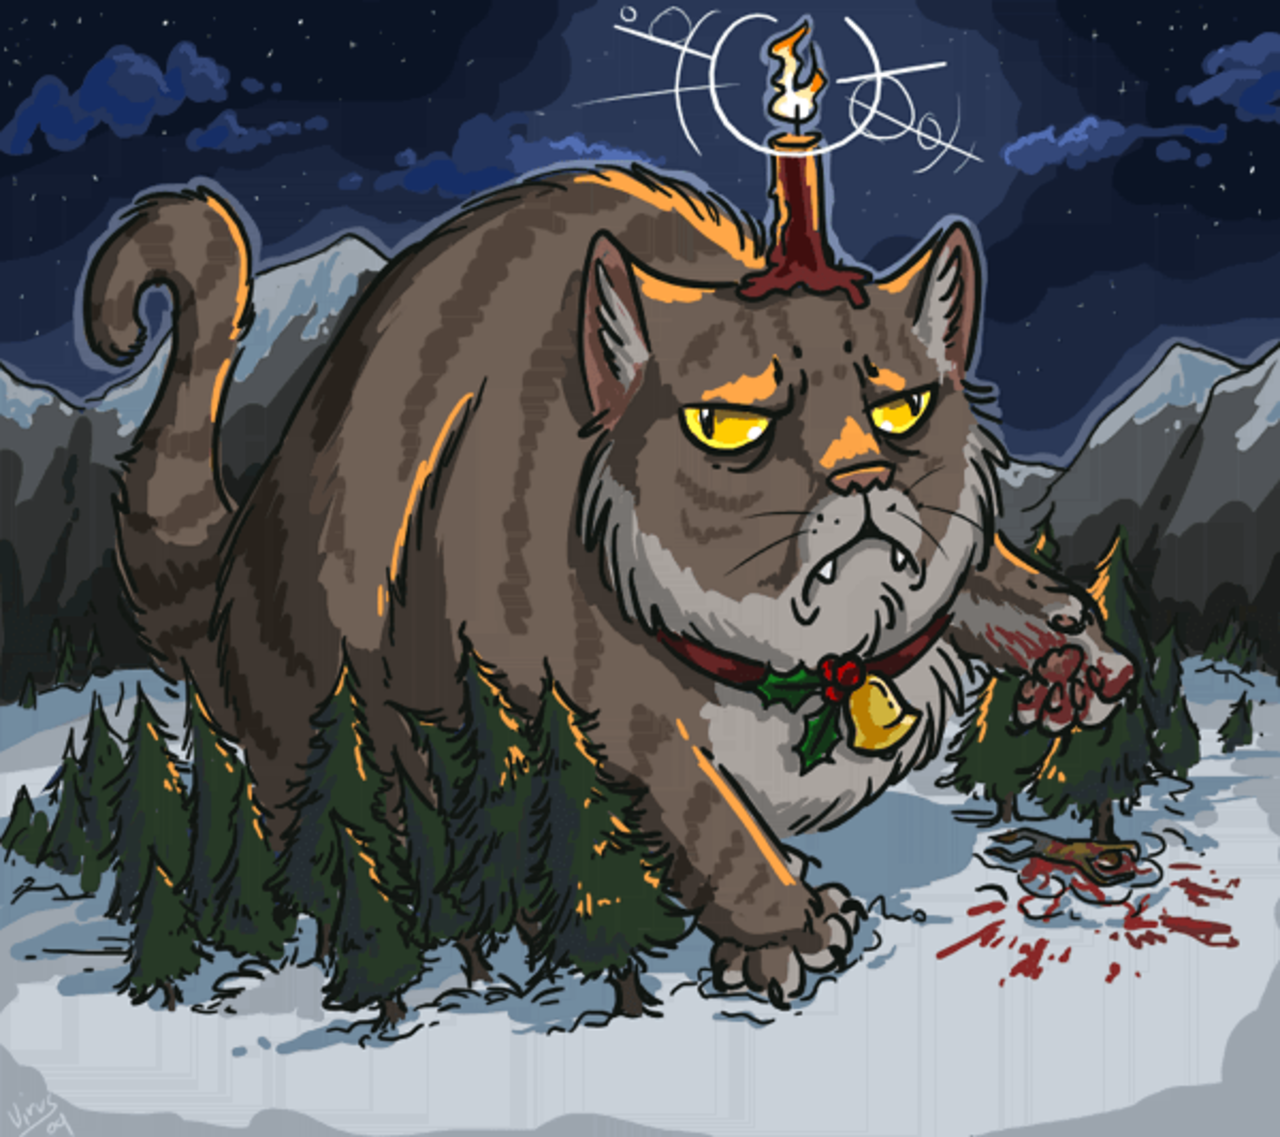 A funny drawing of the scary huge Icelandic Yule Cat stepping on some trees